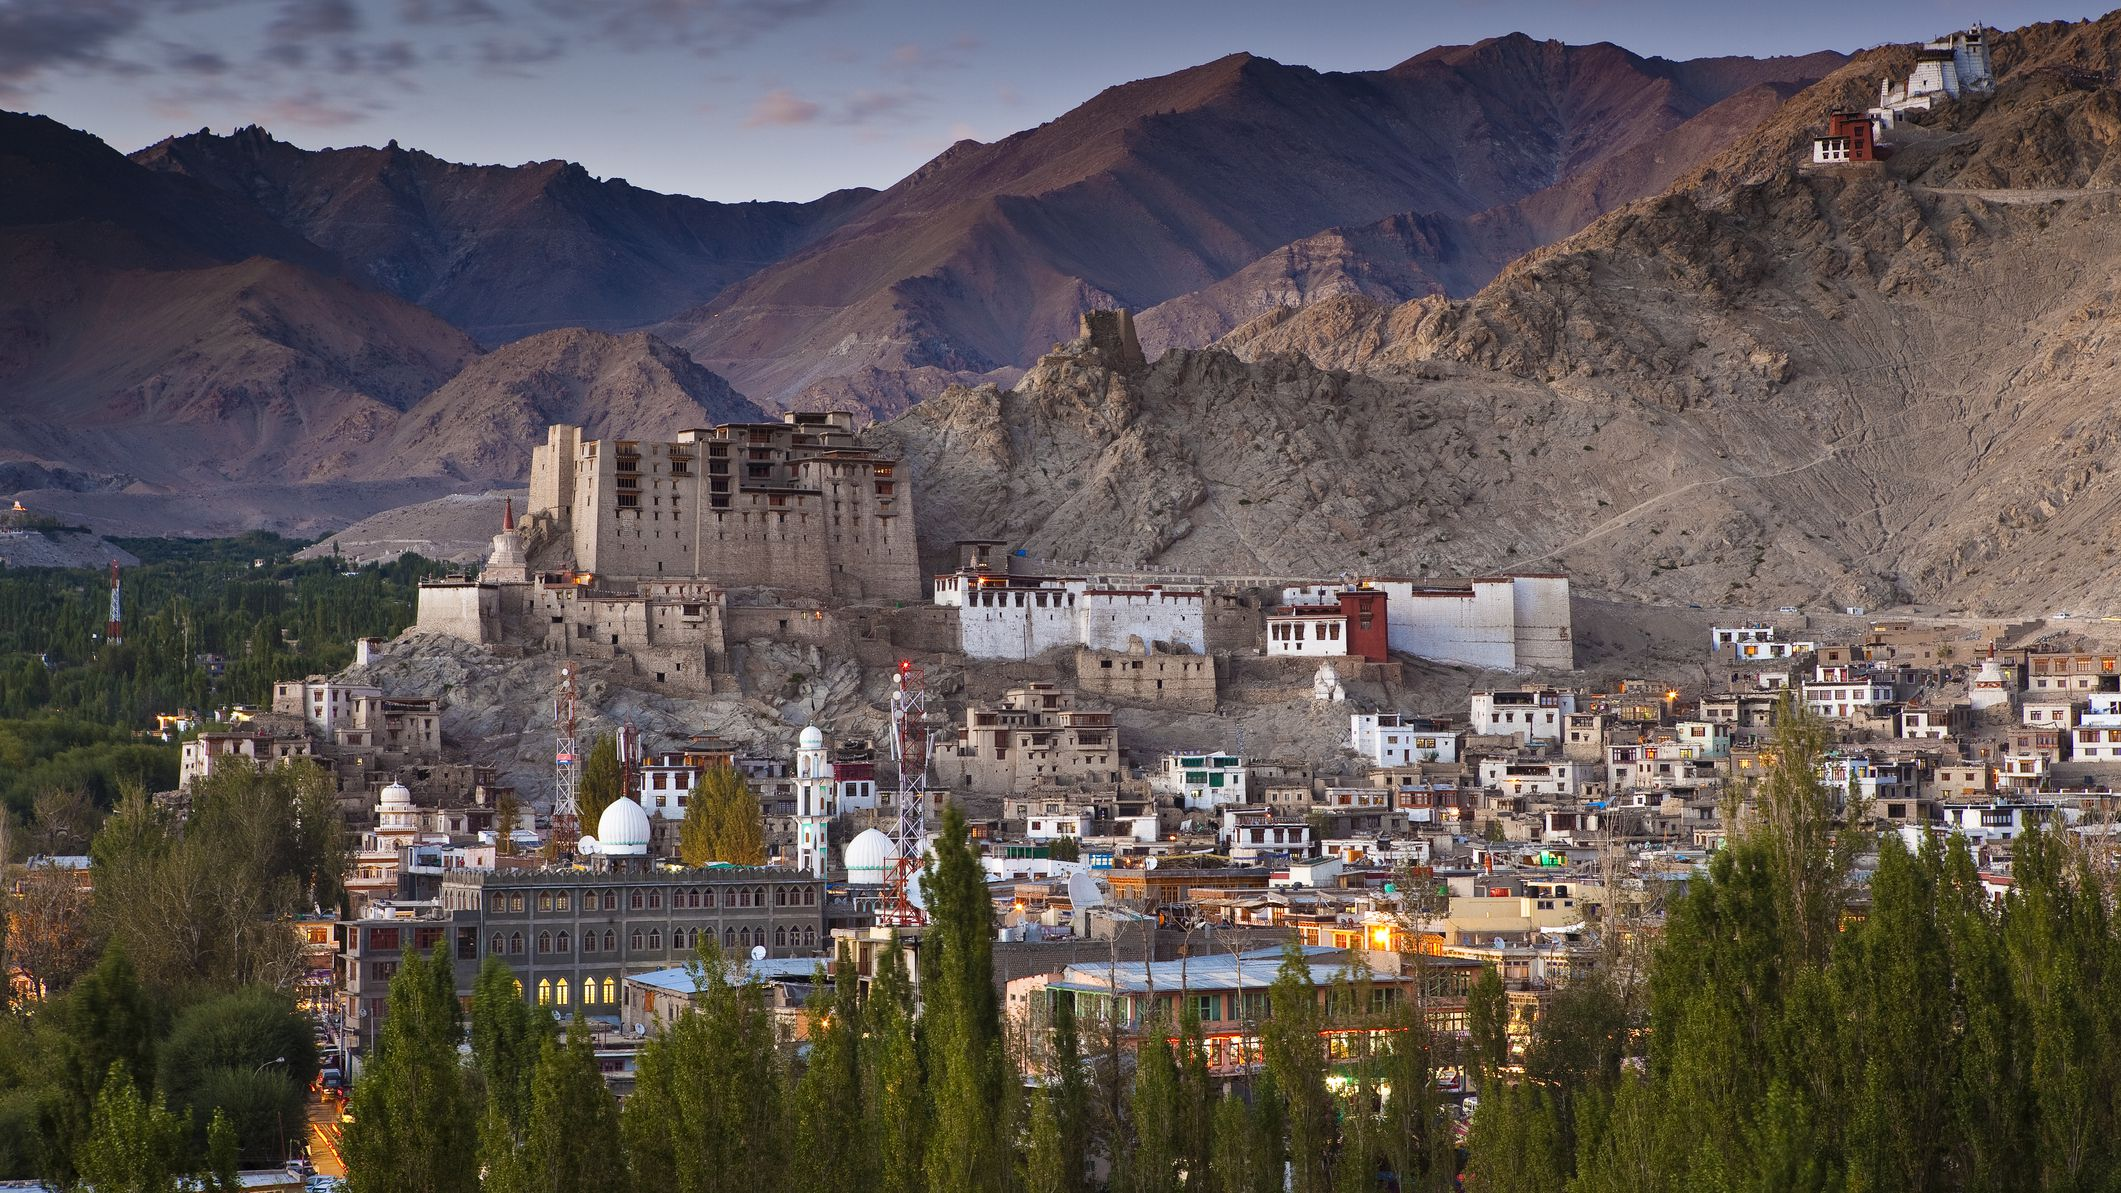 Leh in Ladakh Travel Guide: Attractions, Festivals, Hotels